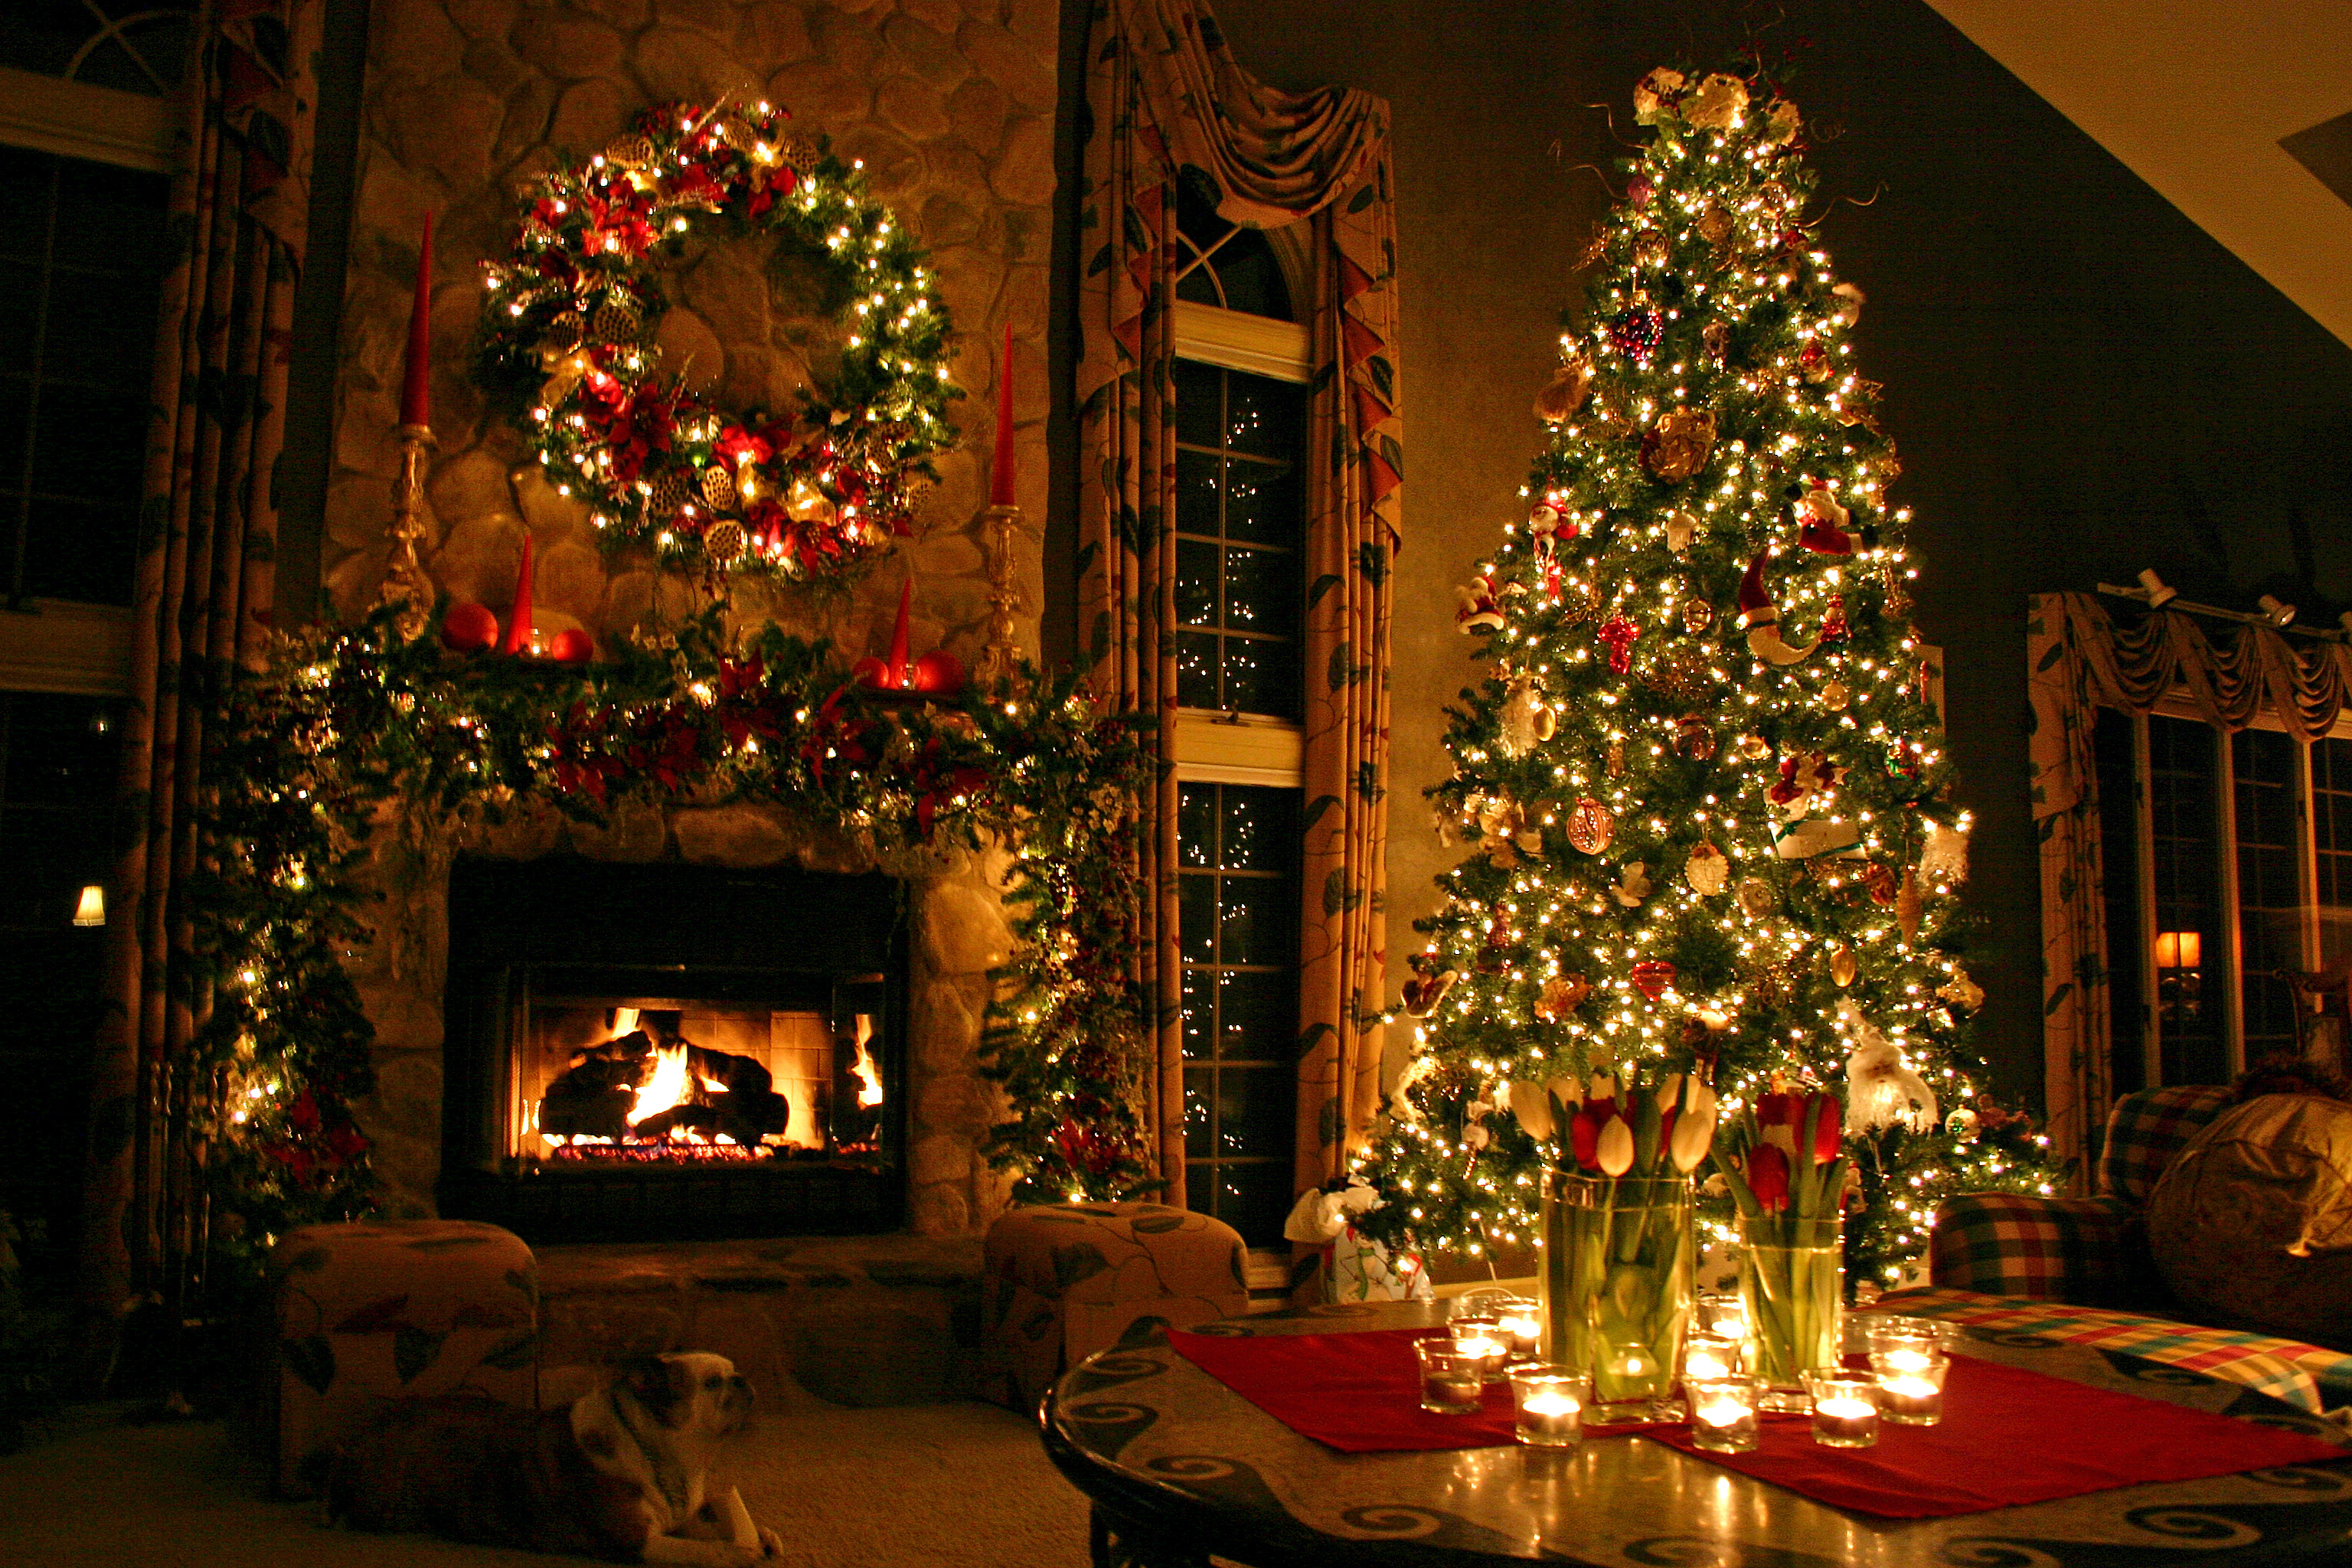 How To Find The Best Christmas Tree For Your Home